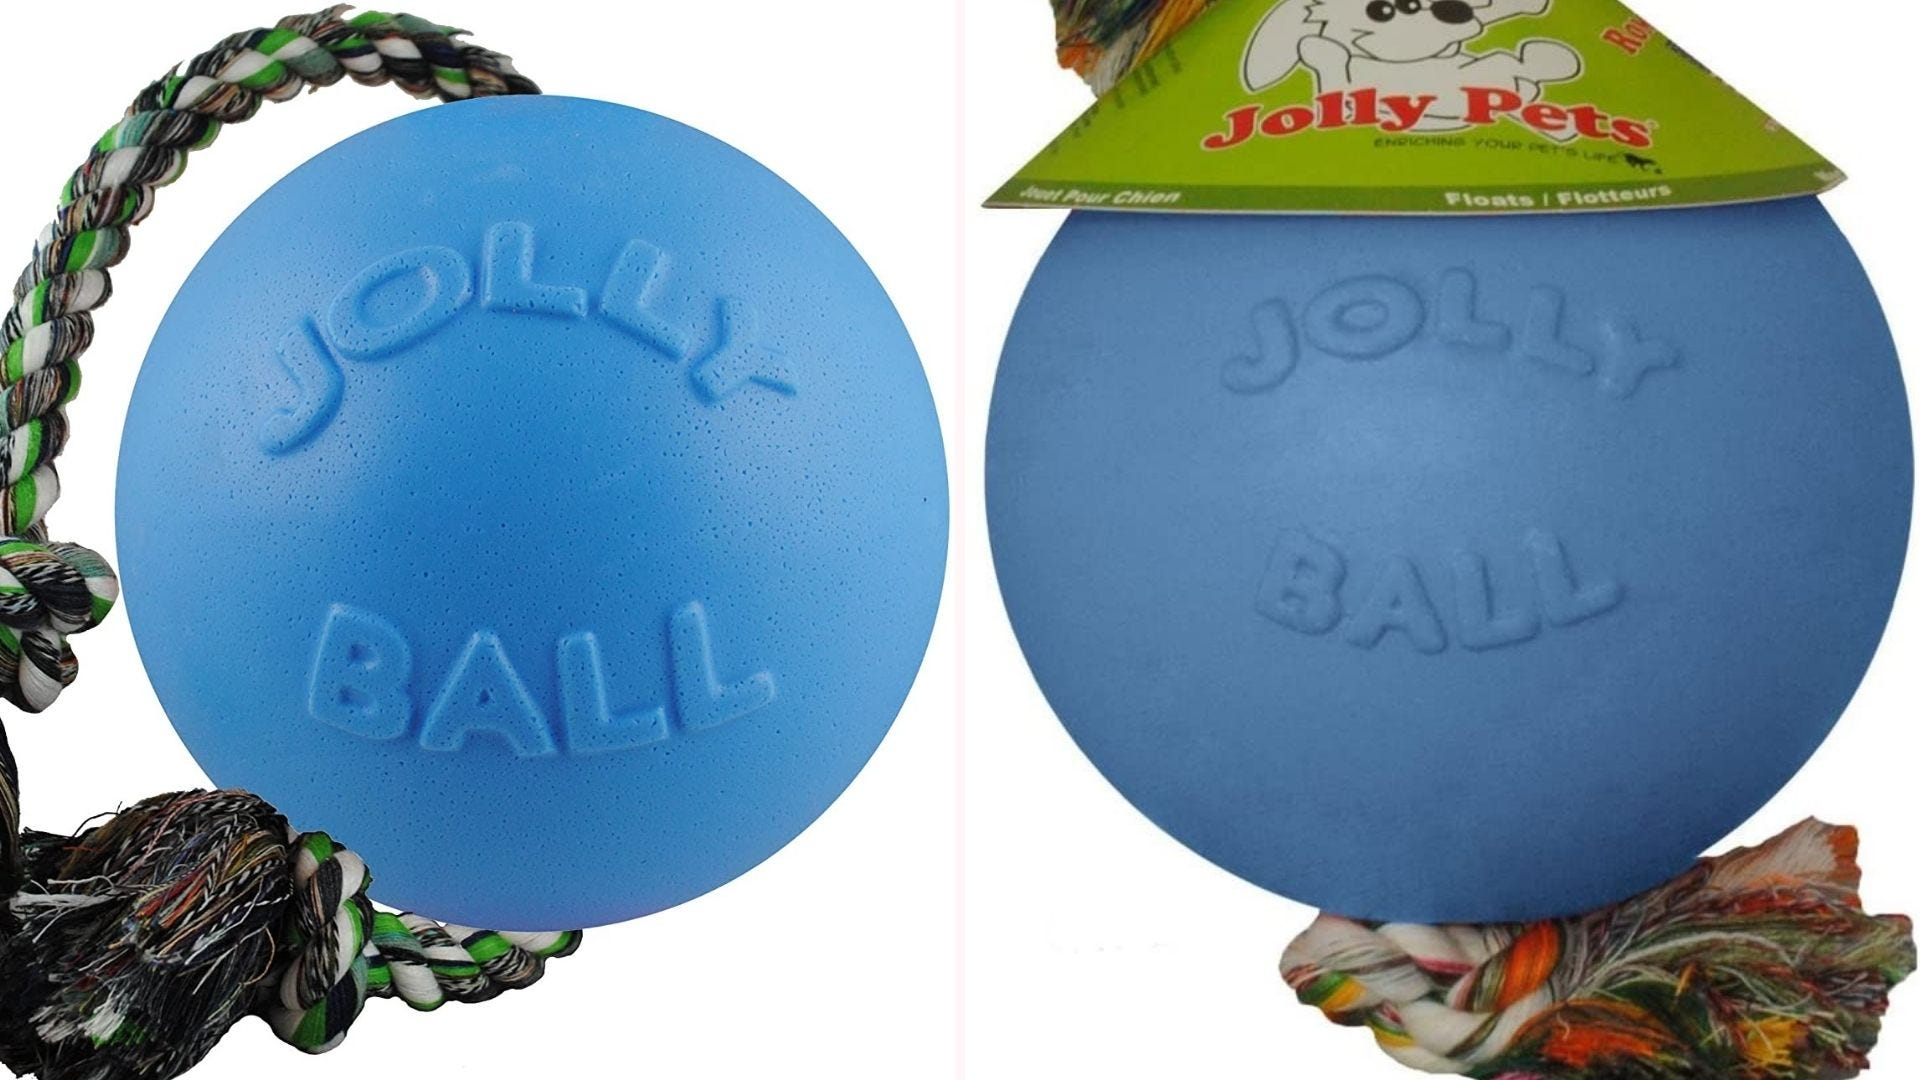 a blue Jolly Ball with rope attached to the top and bottom